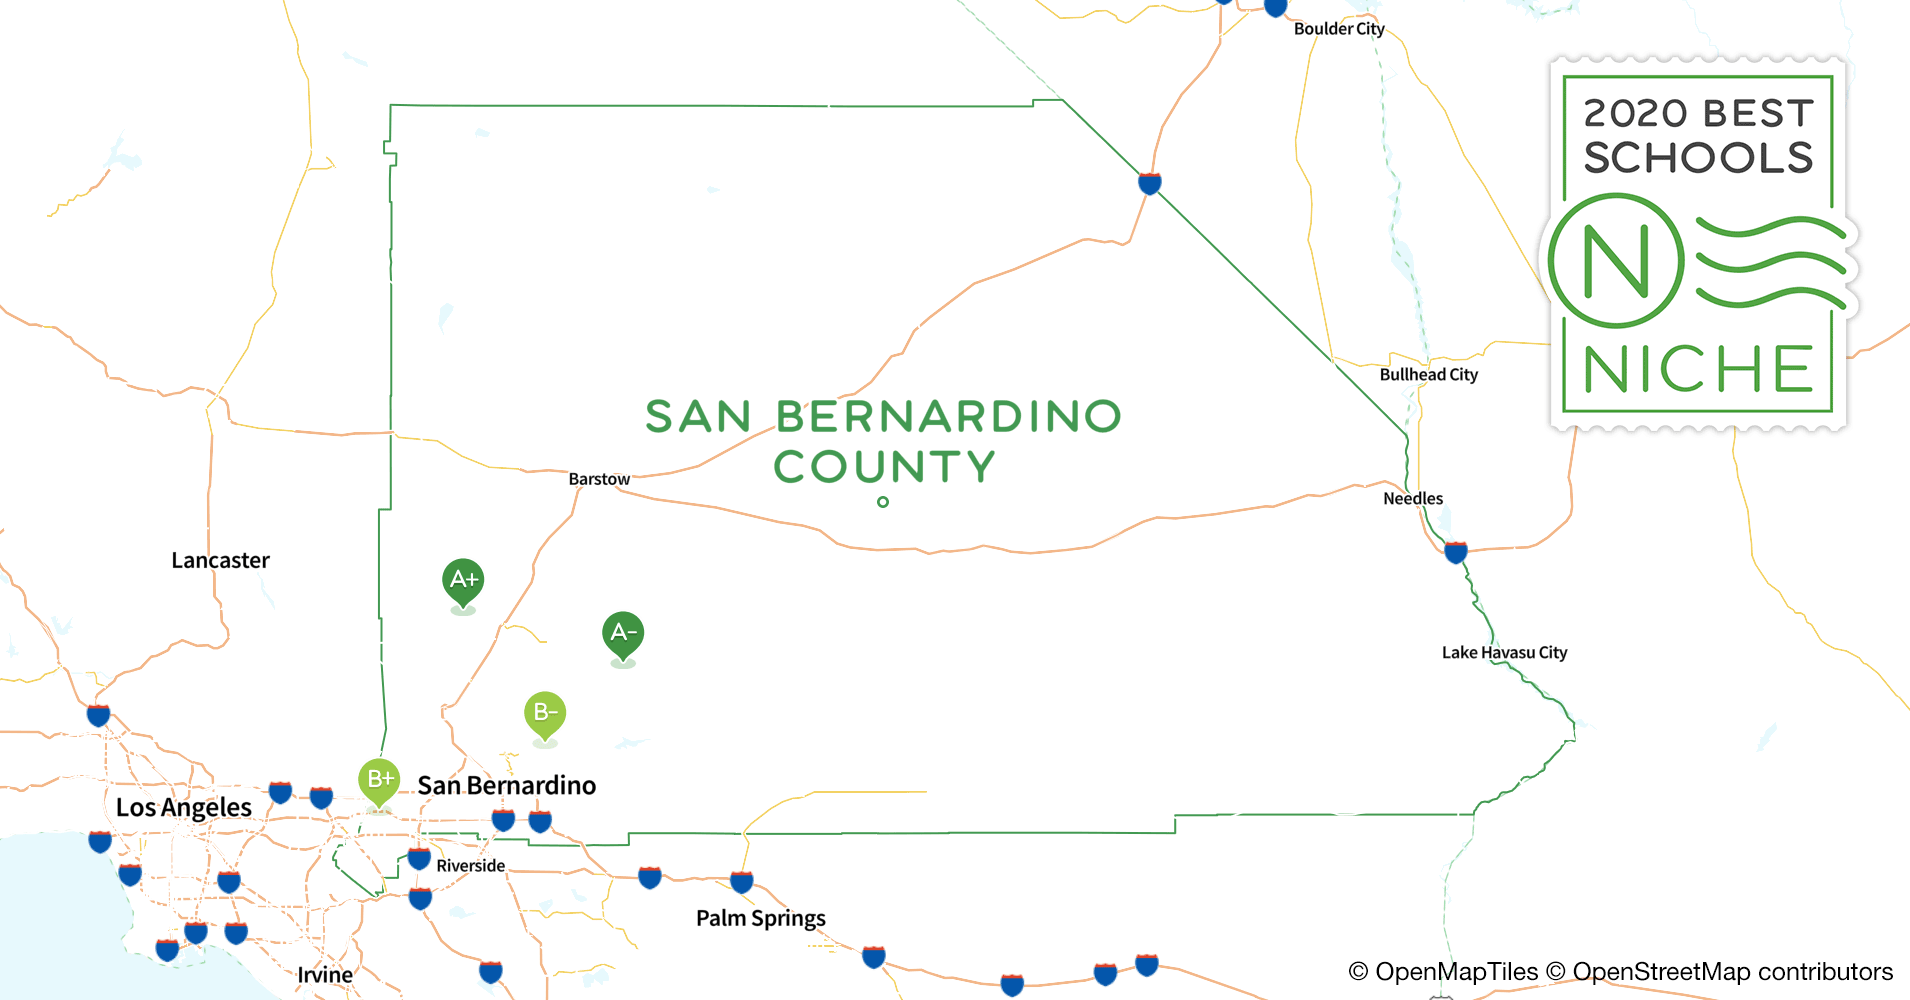 Districts in San Bernardino County, CA - Niche on rancho cucamonga map, canyon crest map, downtown l.a. map, moreno valley map, banning map, desert cities map, south coast metro map, fontana map, sacramento map, mission gorge map, bernardino county map, ventura county map, santa clara map, riverside map, palm springs map, downieville map, mt. san antonio map, sonoma co map, brigham city map, imperial valley map,